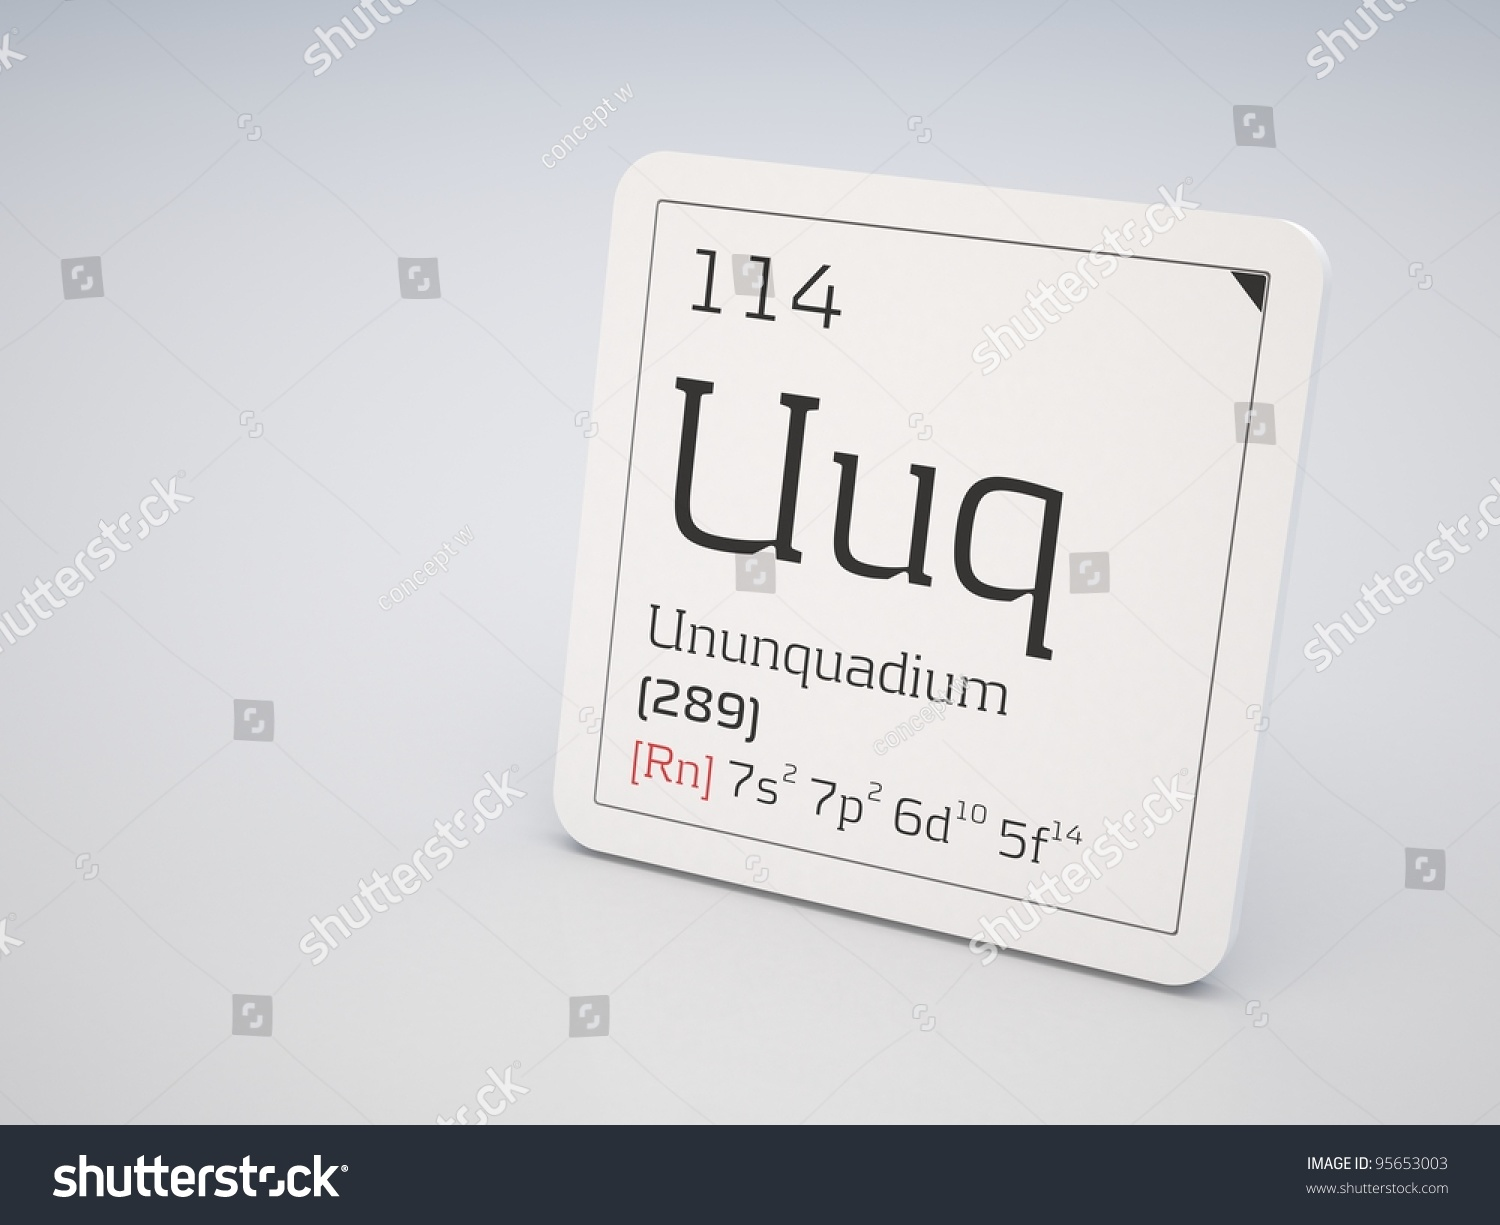 Creator of the periodic table images periodic table images periodic table creator image collections periodic table images periodic table creator choice image periodic table images gamestrikefo Image collections